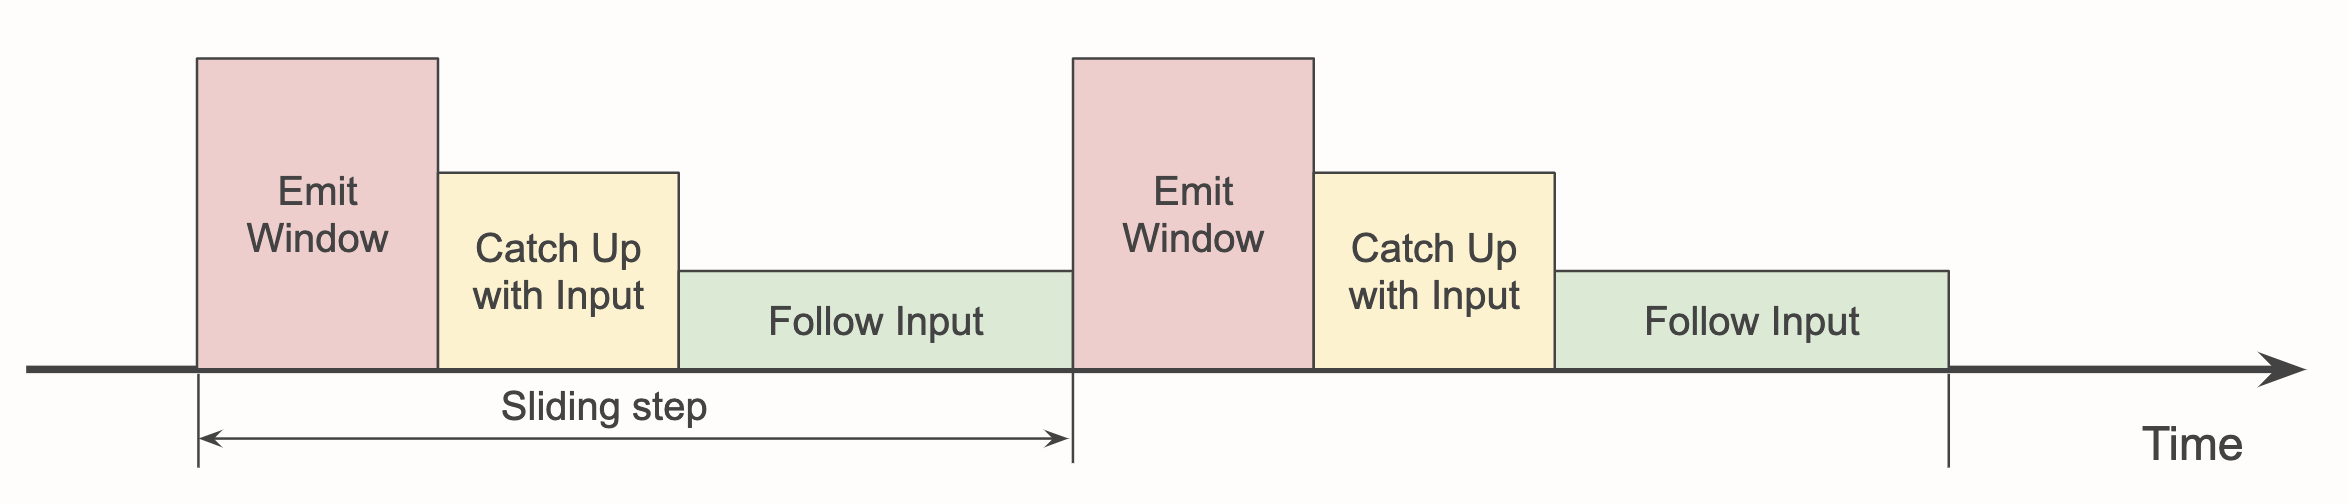 Phases of the sliding window computation